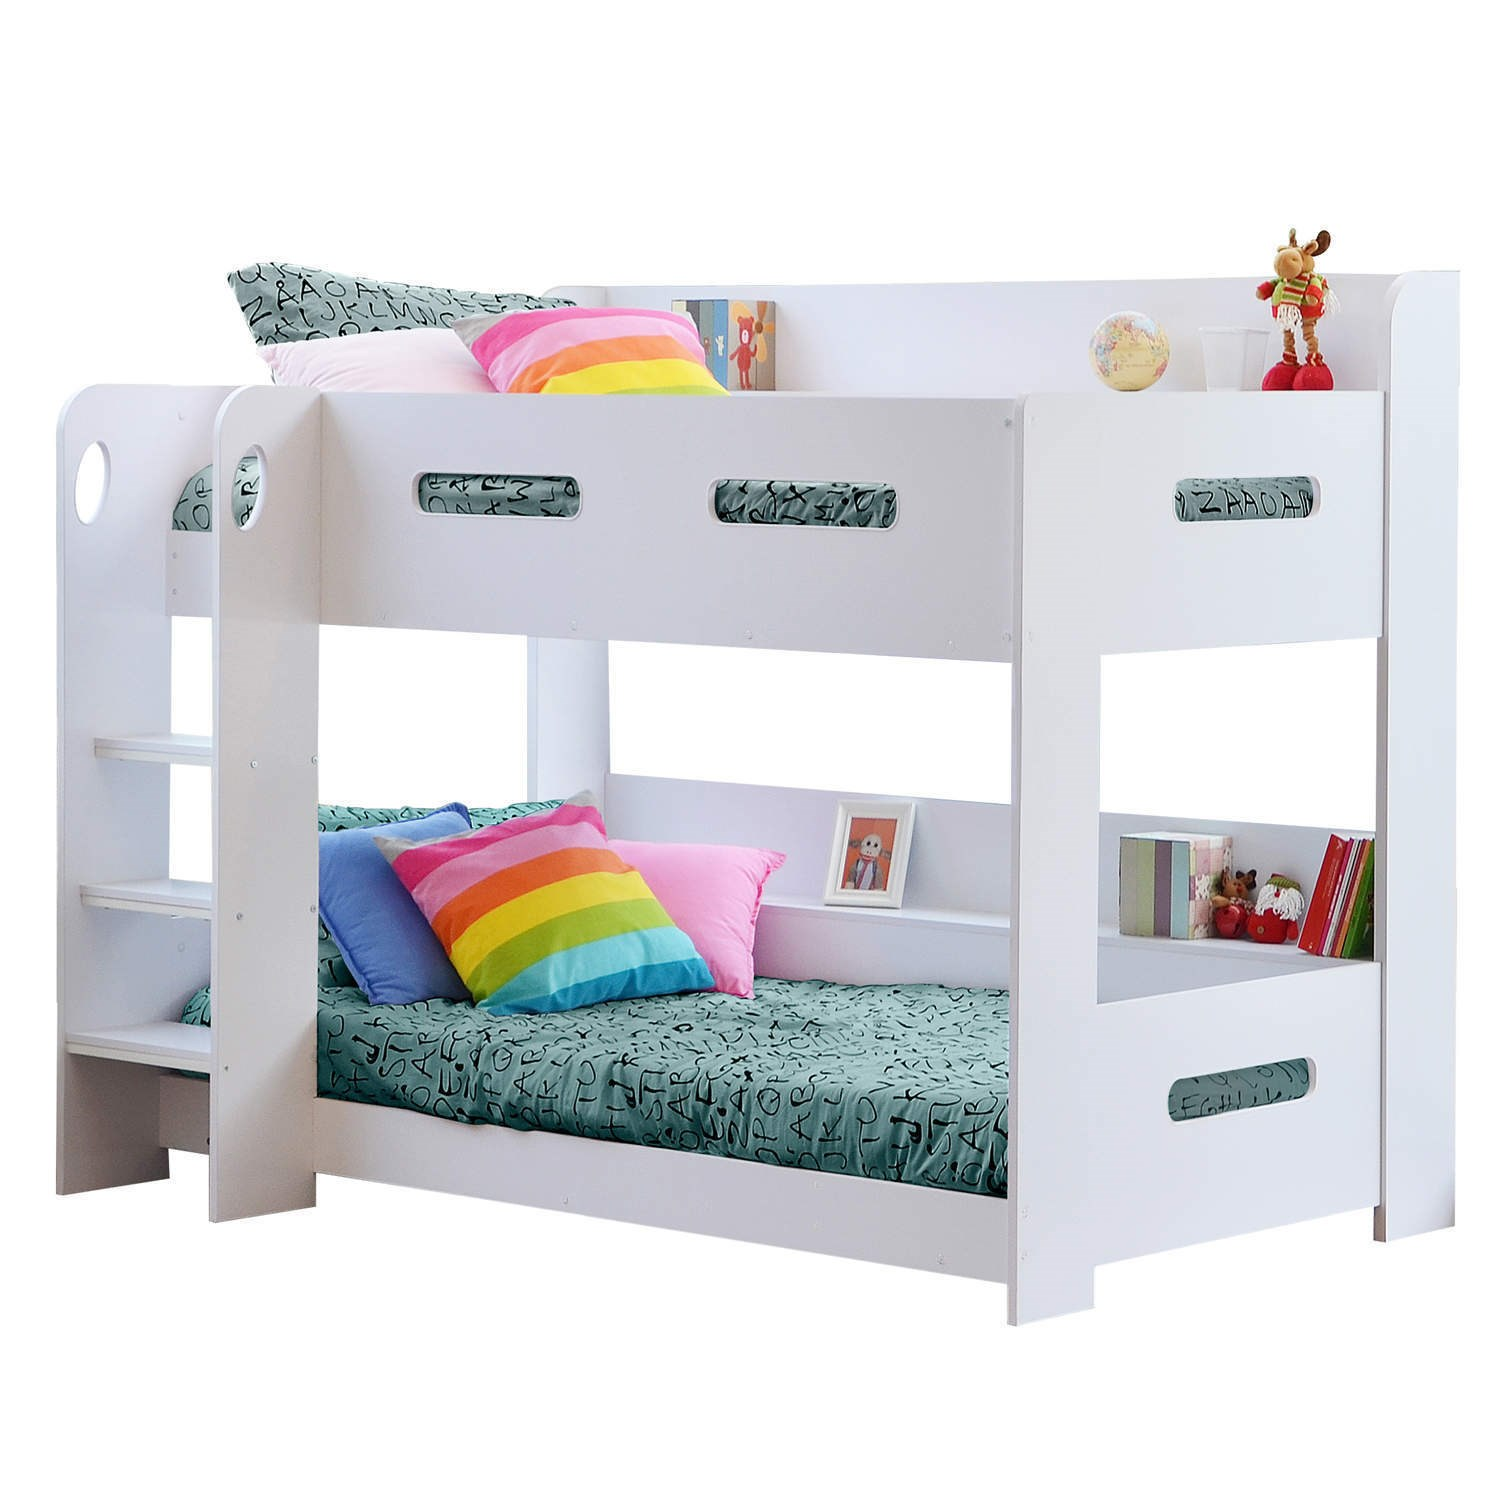 Modern kids white wooden bunk bed storage shelves ebay for Modern kids bunk beds